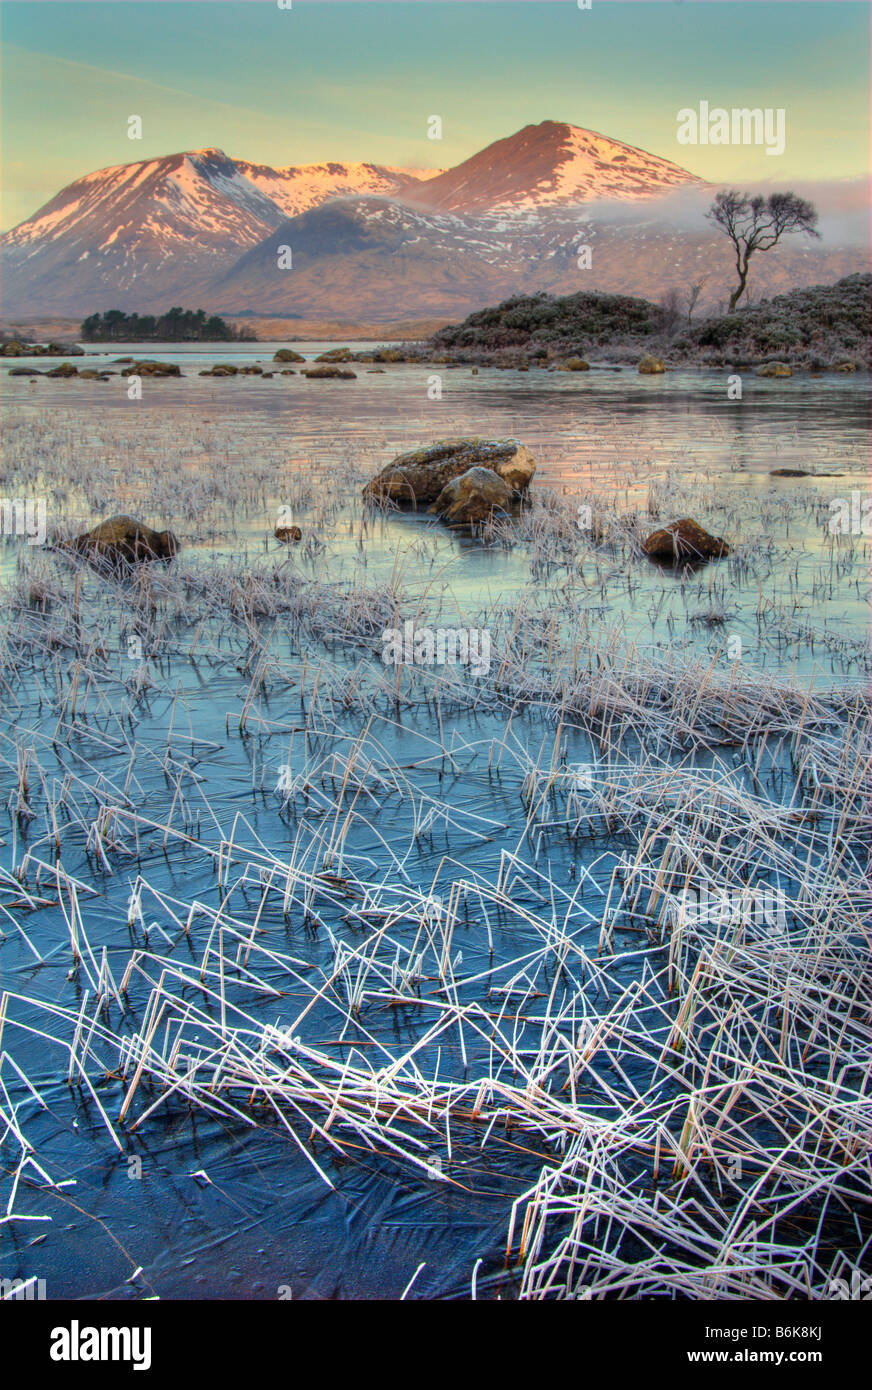 Lochan nah Achlaise in the foreground with the hills of the Black Mount behind in the Lochaber region of Scotland - Stock Image